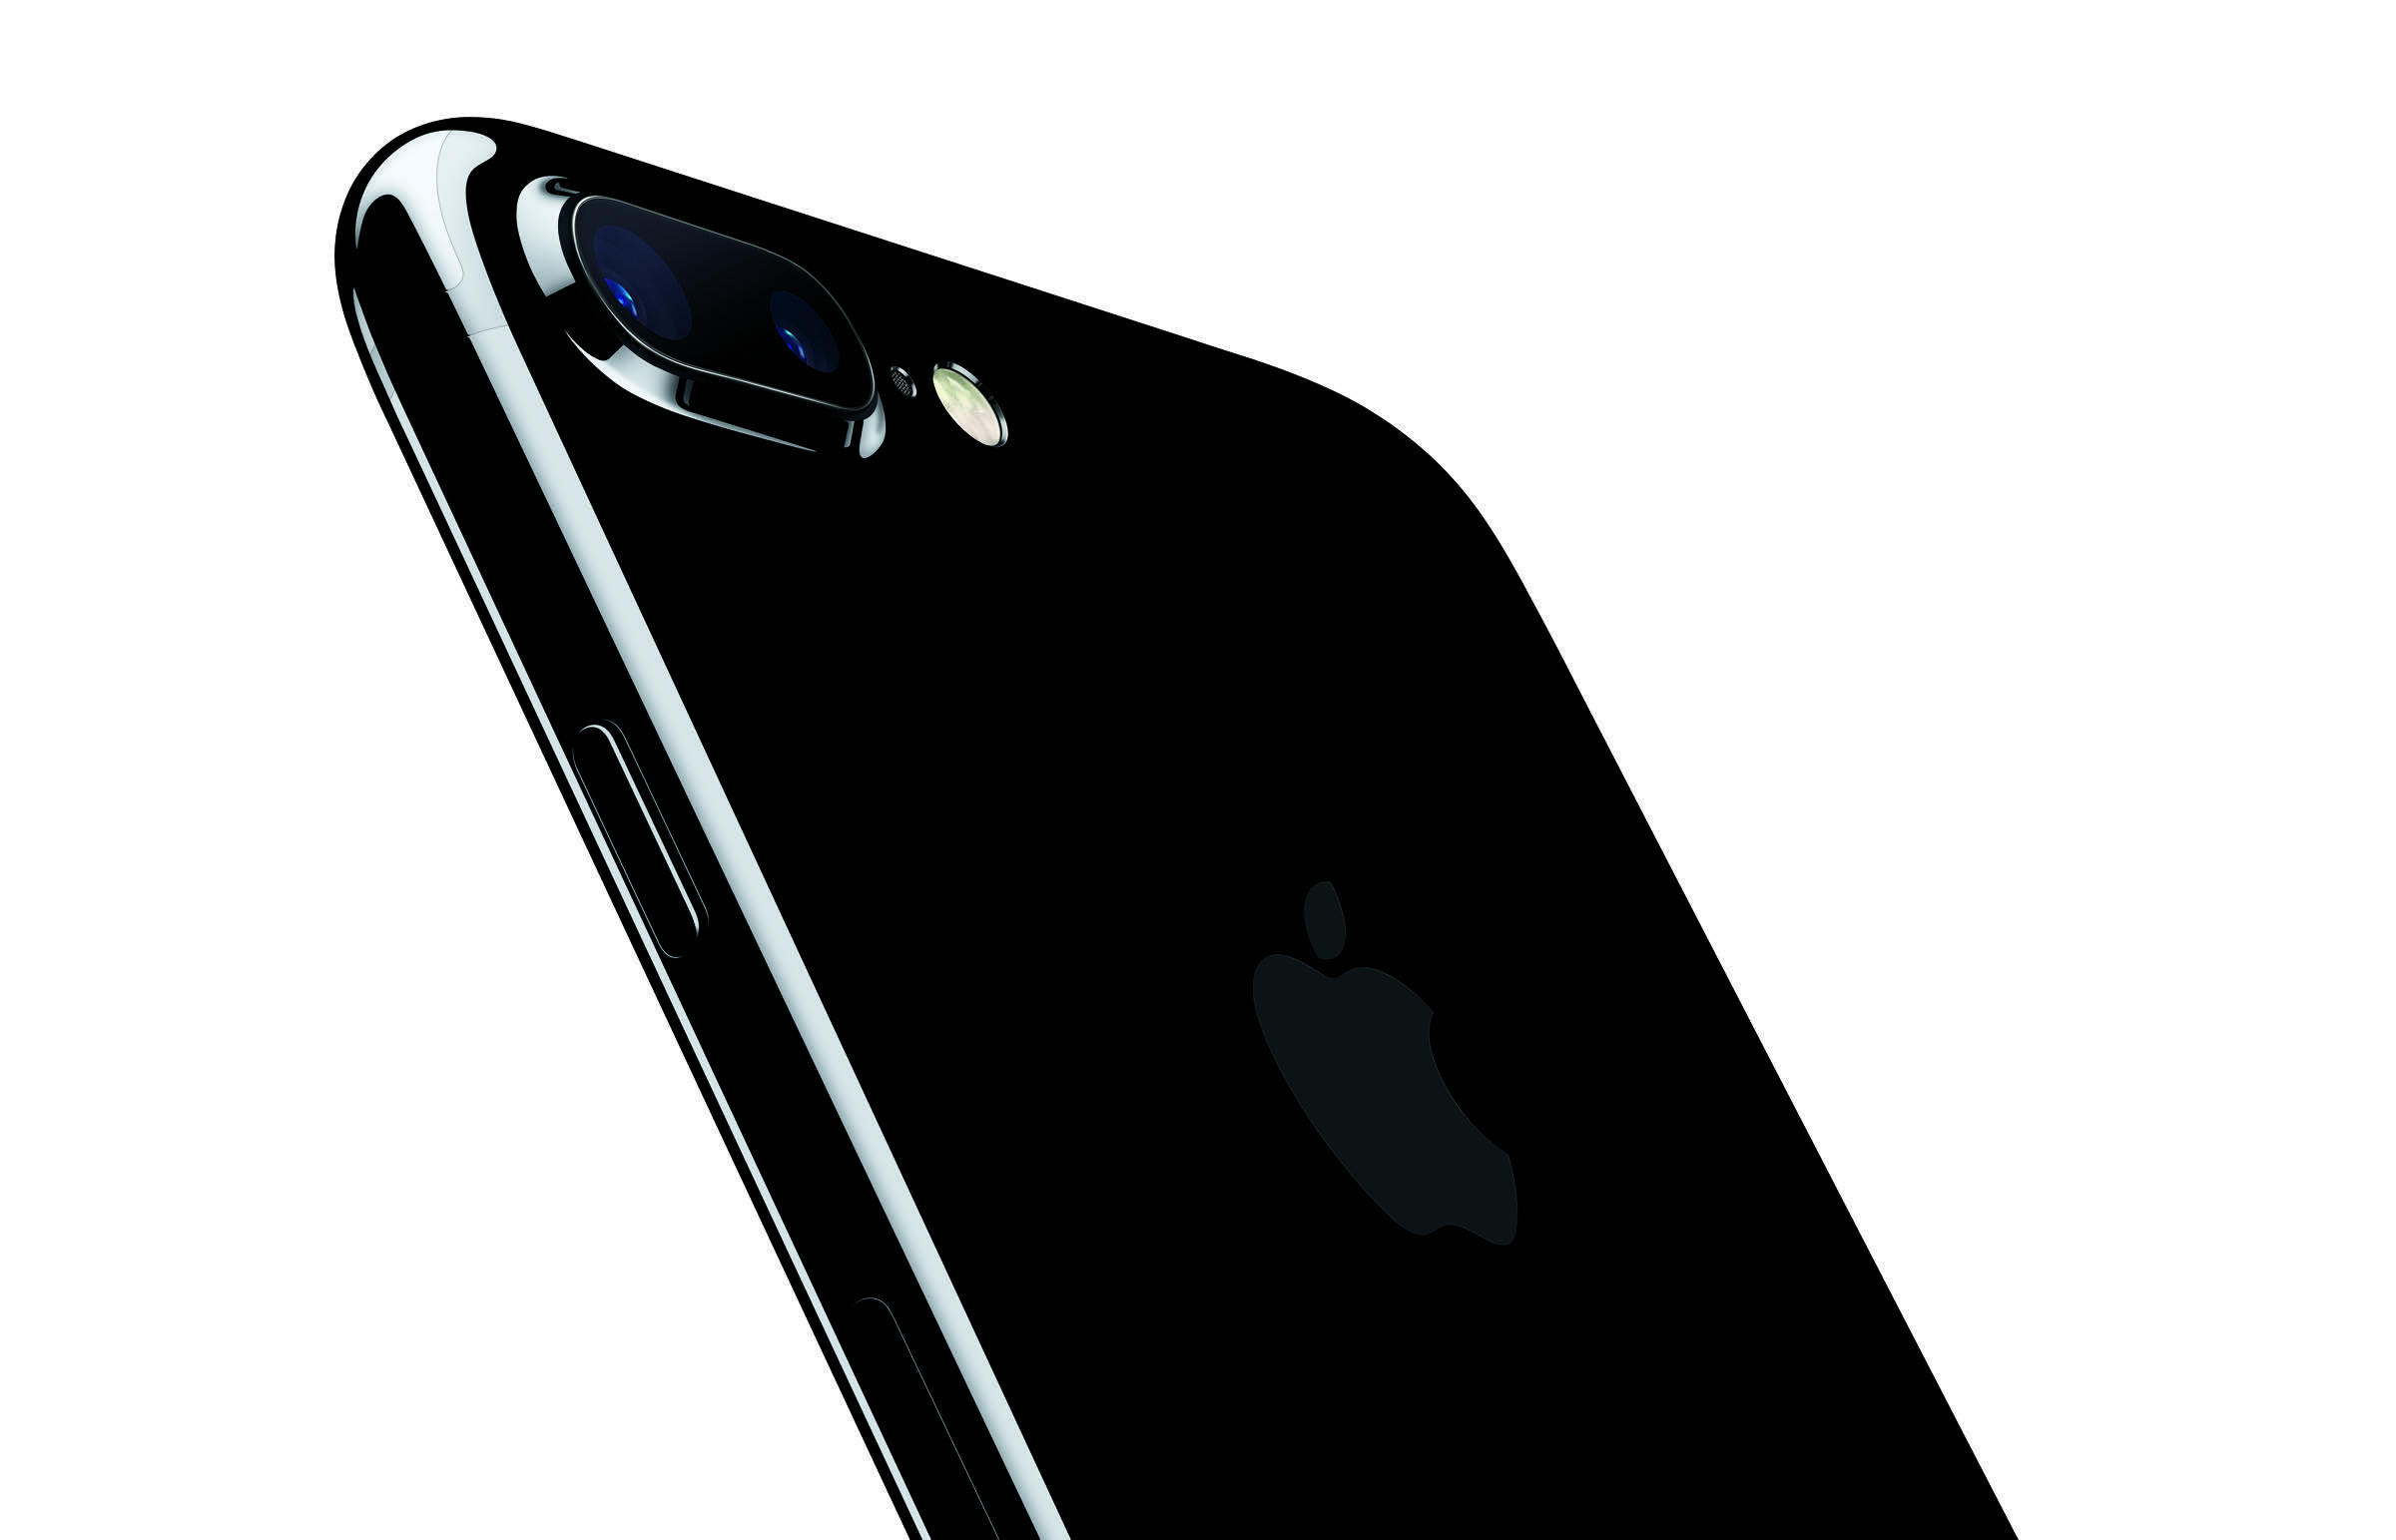 Das iPhone 7 Plus in Jet Black